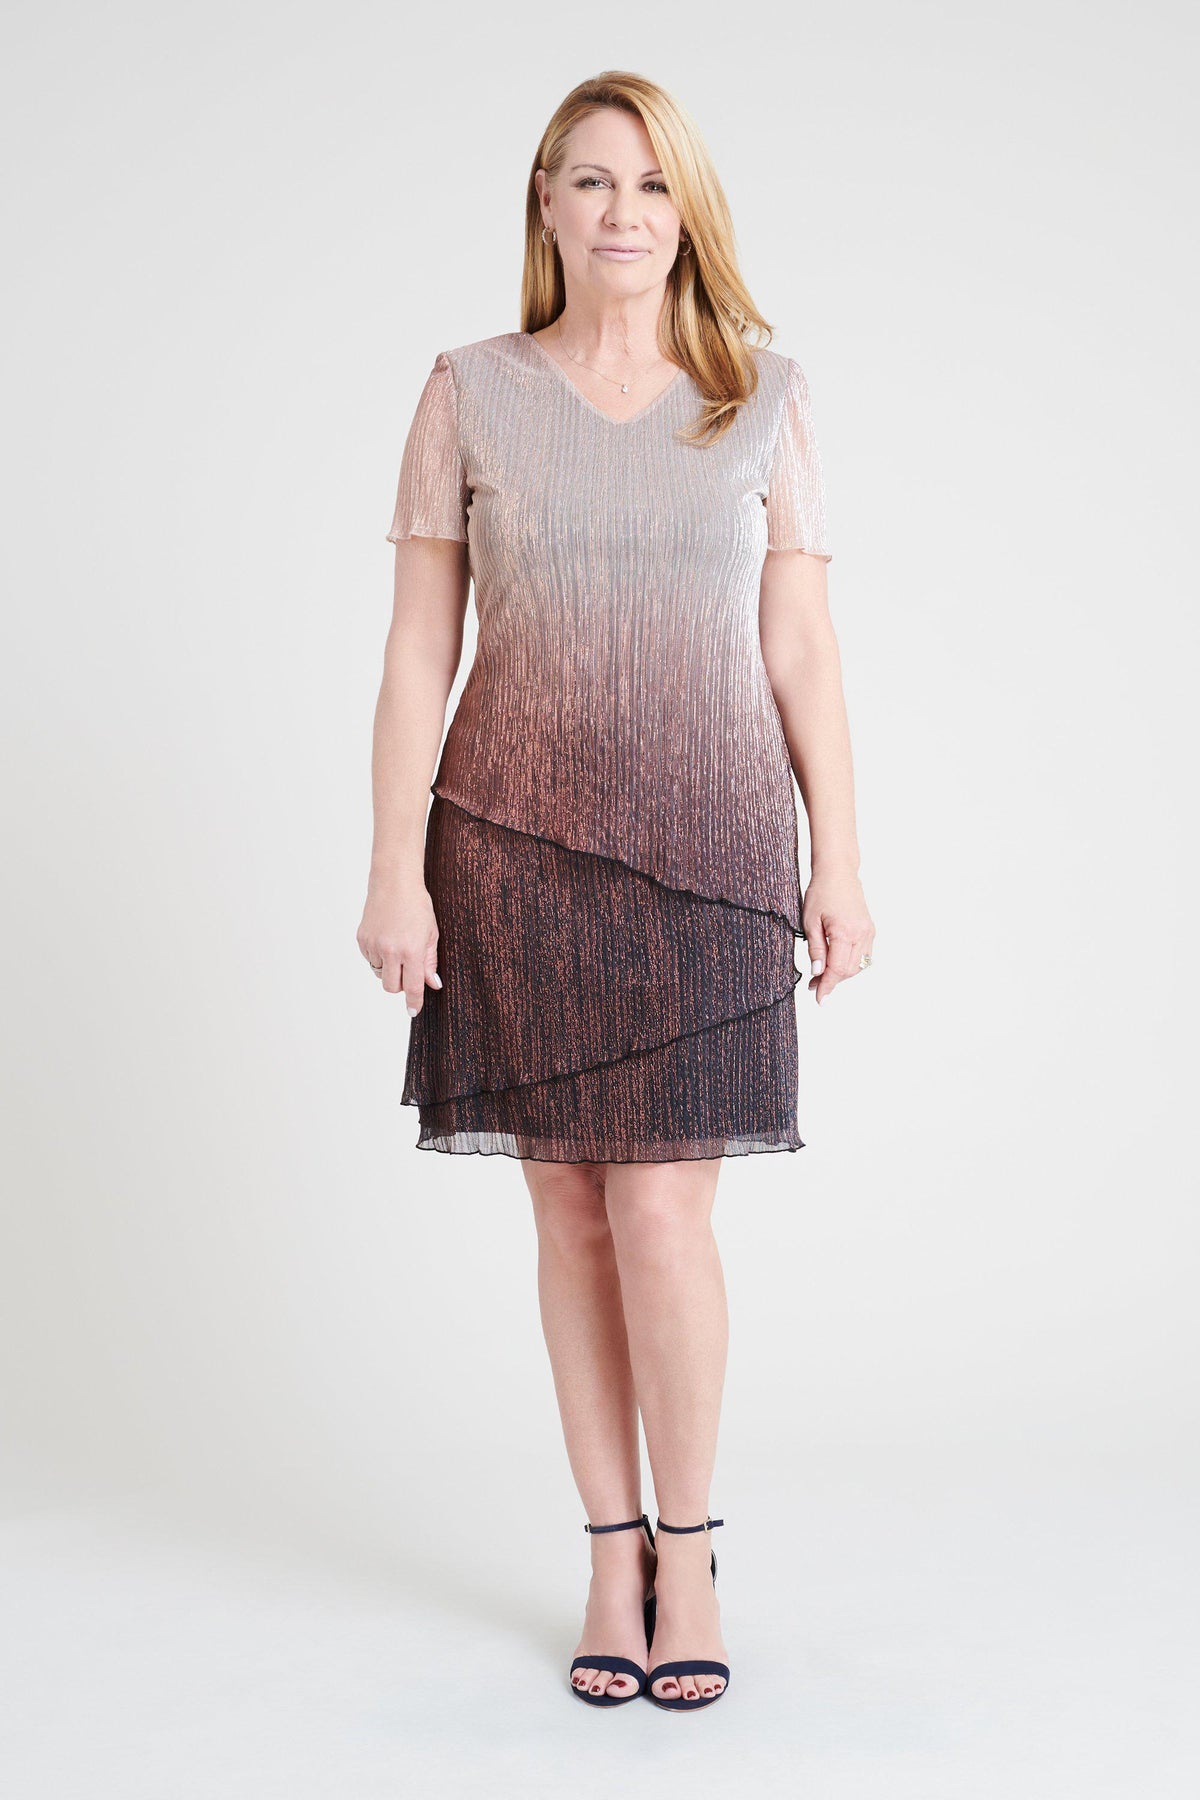 Woman posing wearing Pink/Mauve Penny Ombre Metallic Dress from Connected Apparel